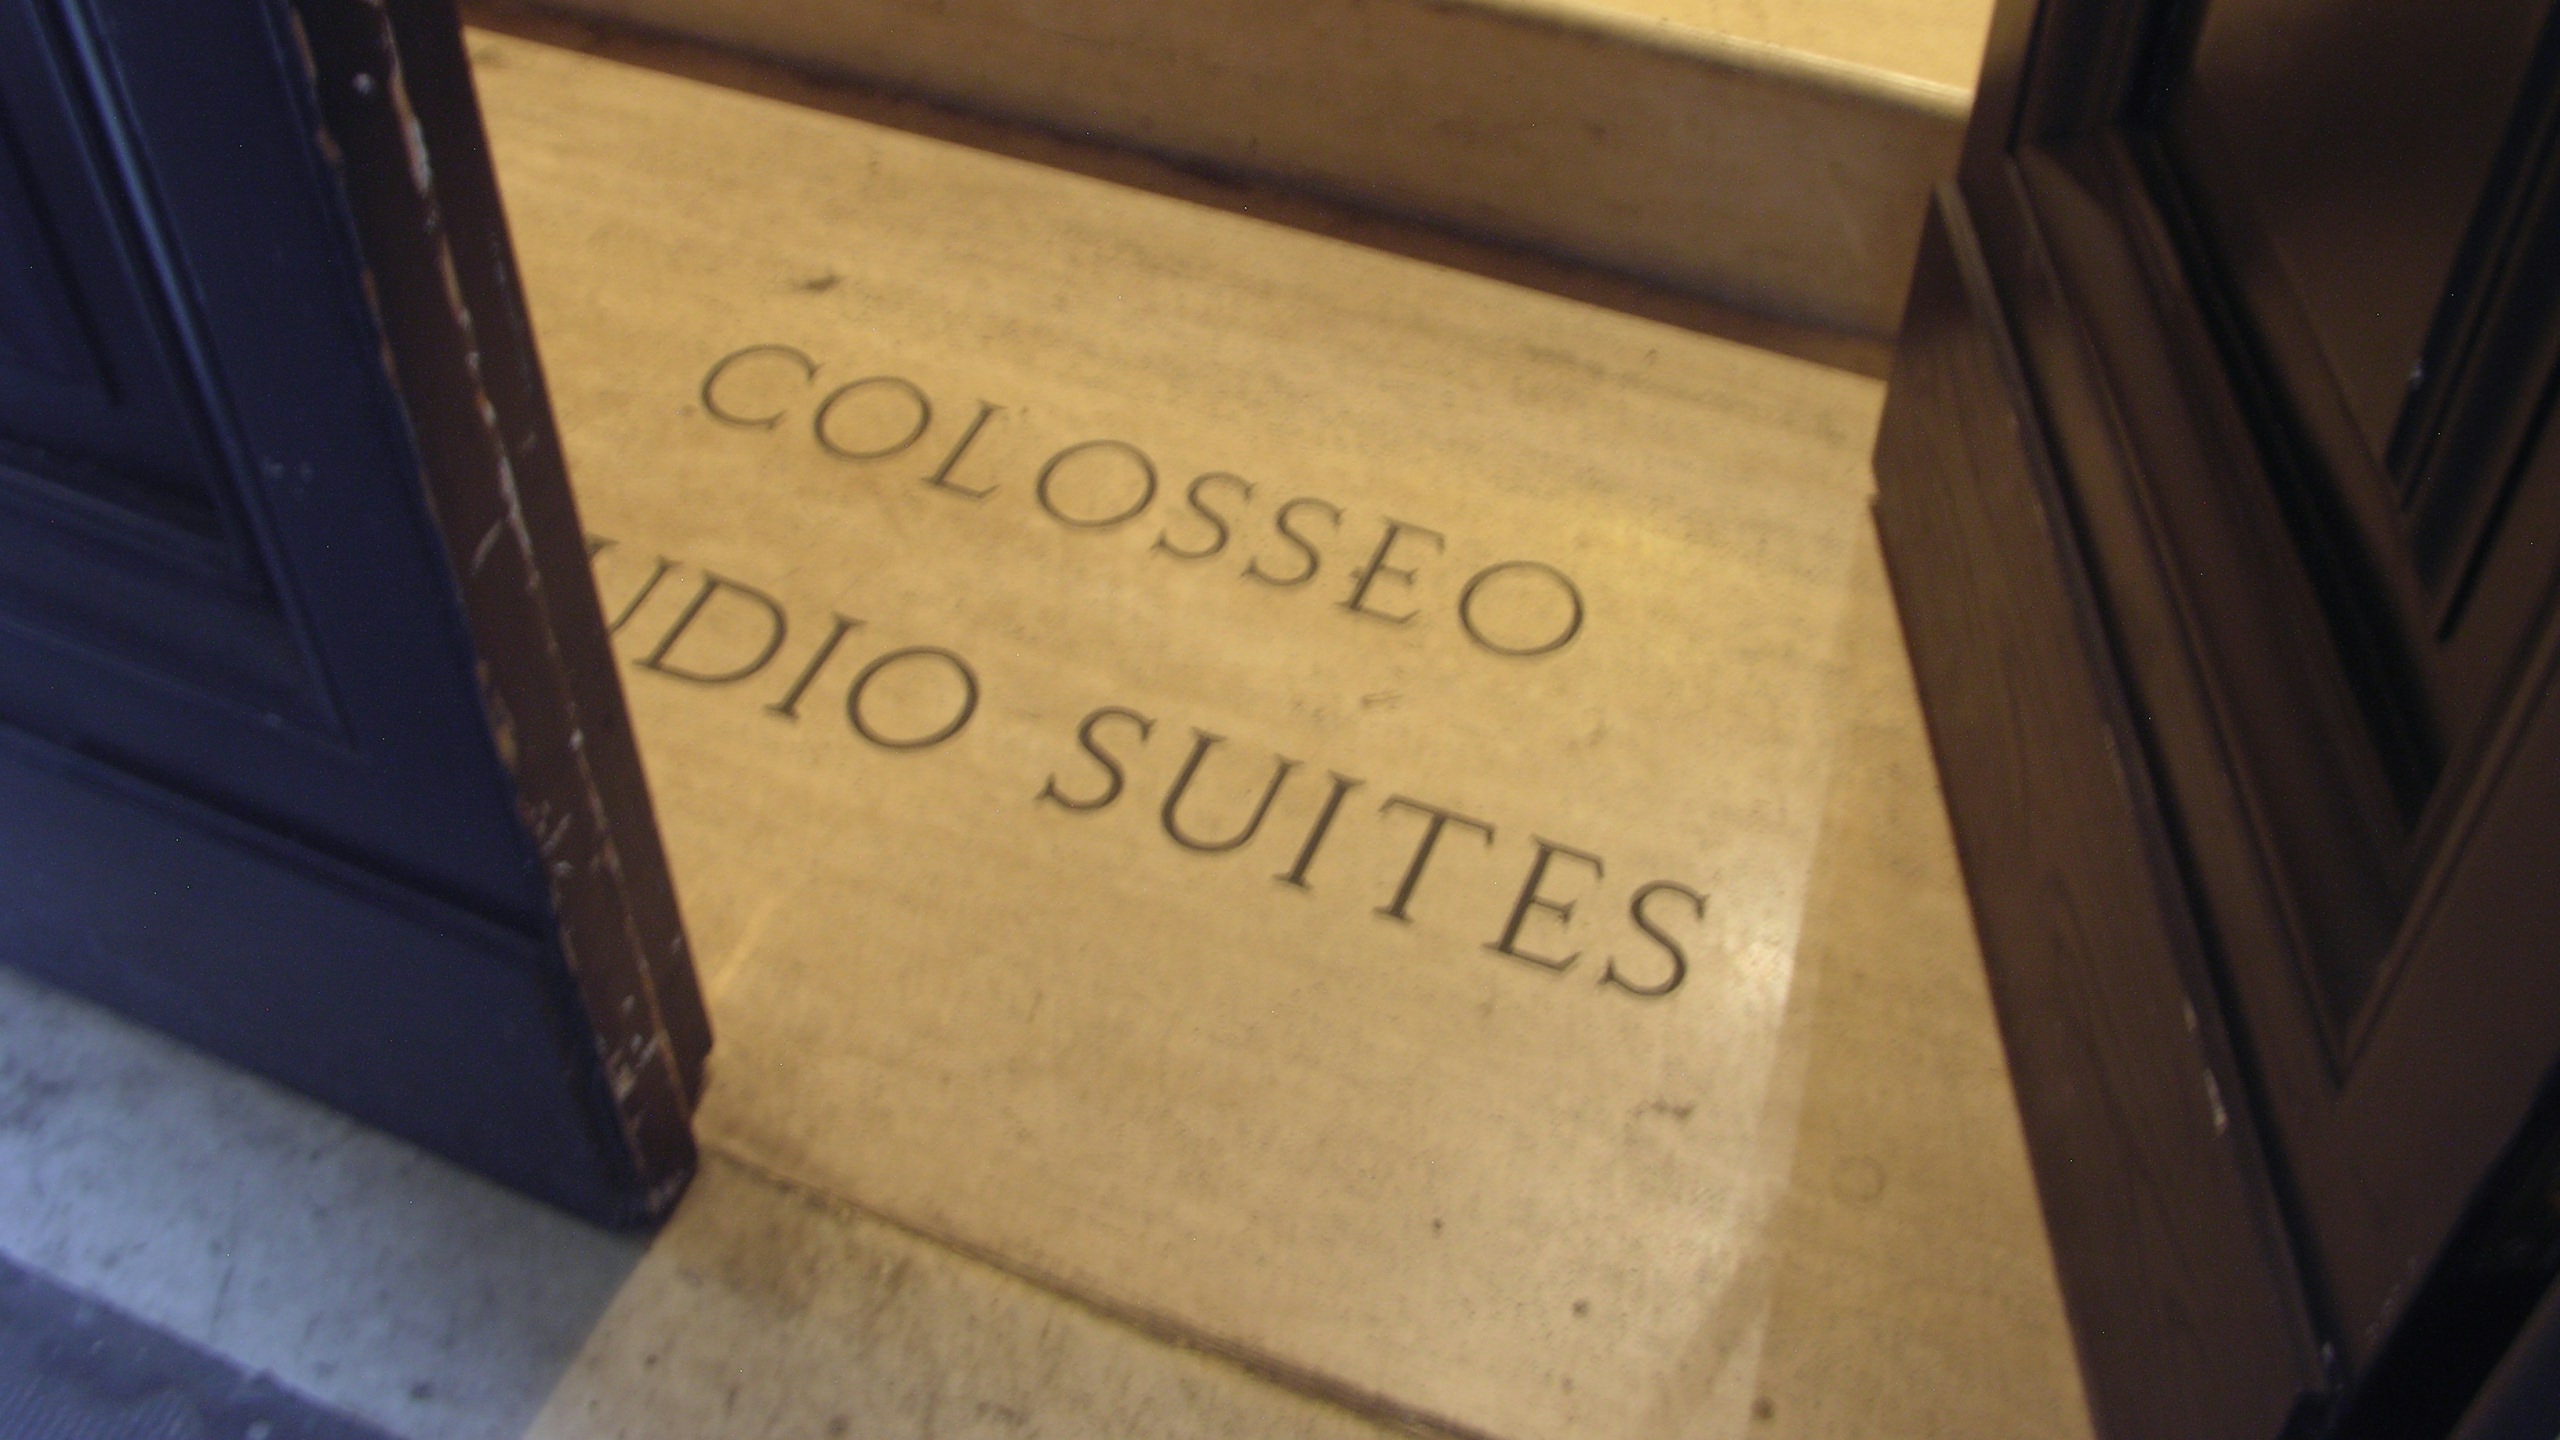 colosseo-suites-roma-externo-05